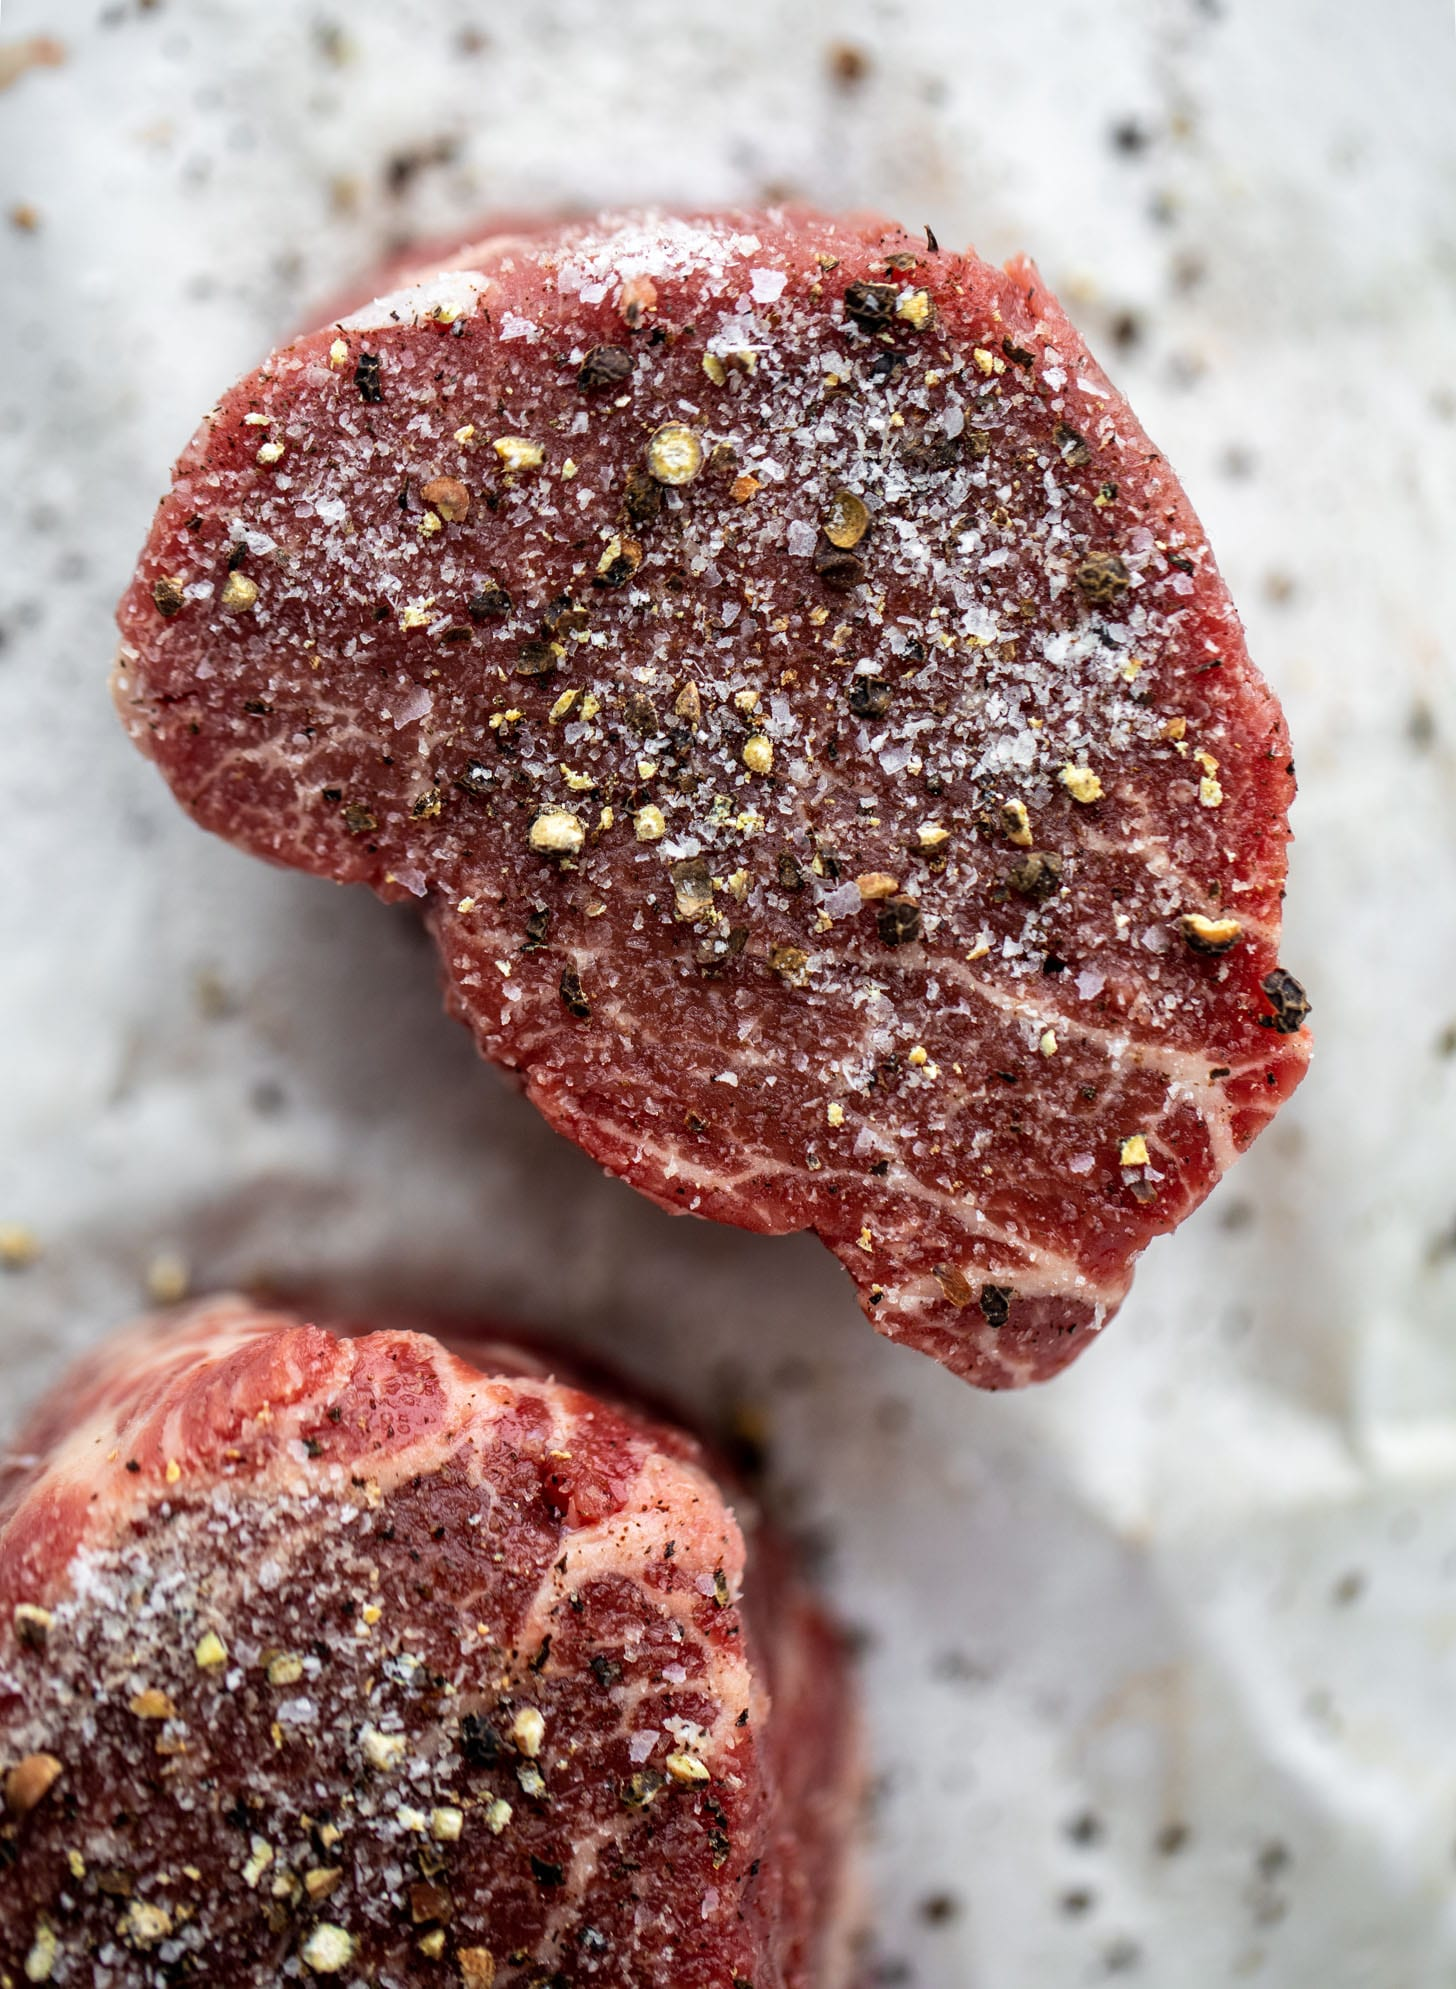 filet mignon steaks with salt and pepper